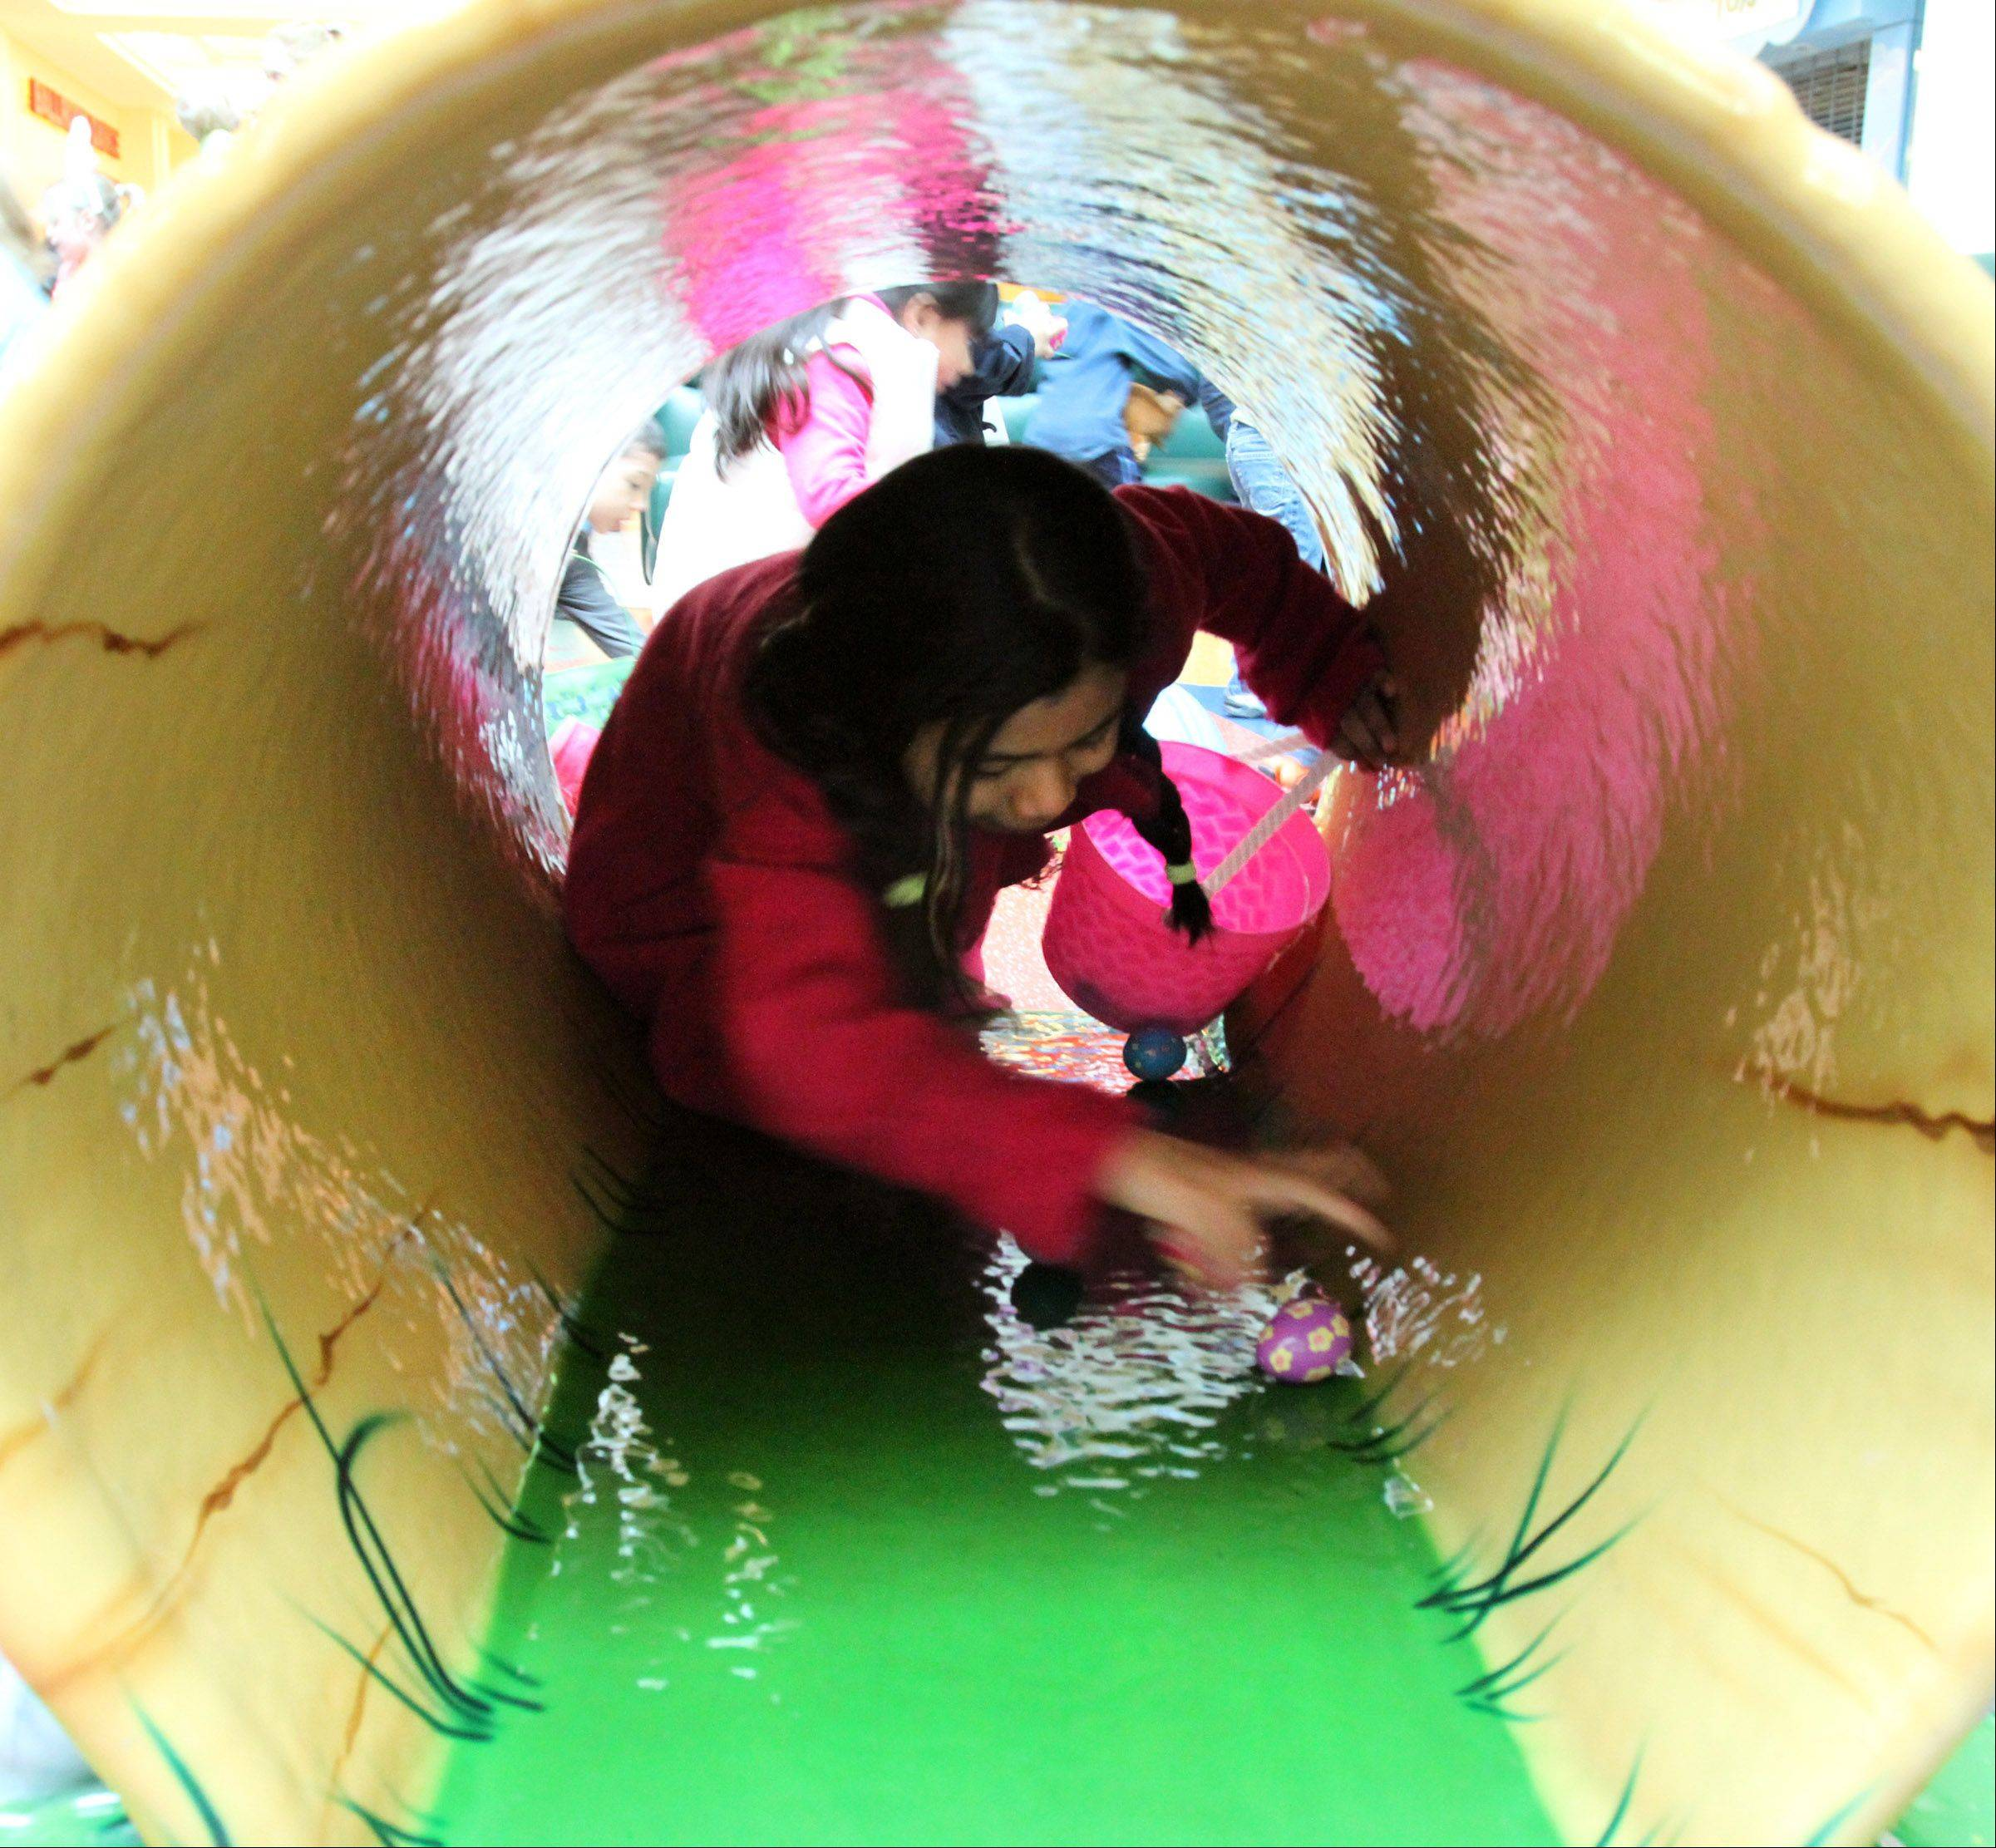 Alejandia Guzman, 8, of Mundeleinm, finds an egg inside of a tunnel in the play-town area at the annual Easter egg hunt at Westfield Hawthorn Mall in Vernon Hills on Saturday. The mallwide egg hunt event included petting zoo, face-painting, doughnuts, and music.